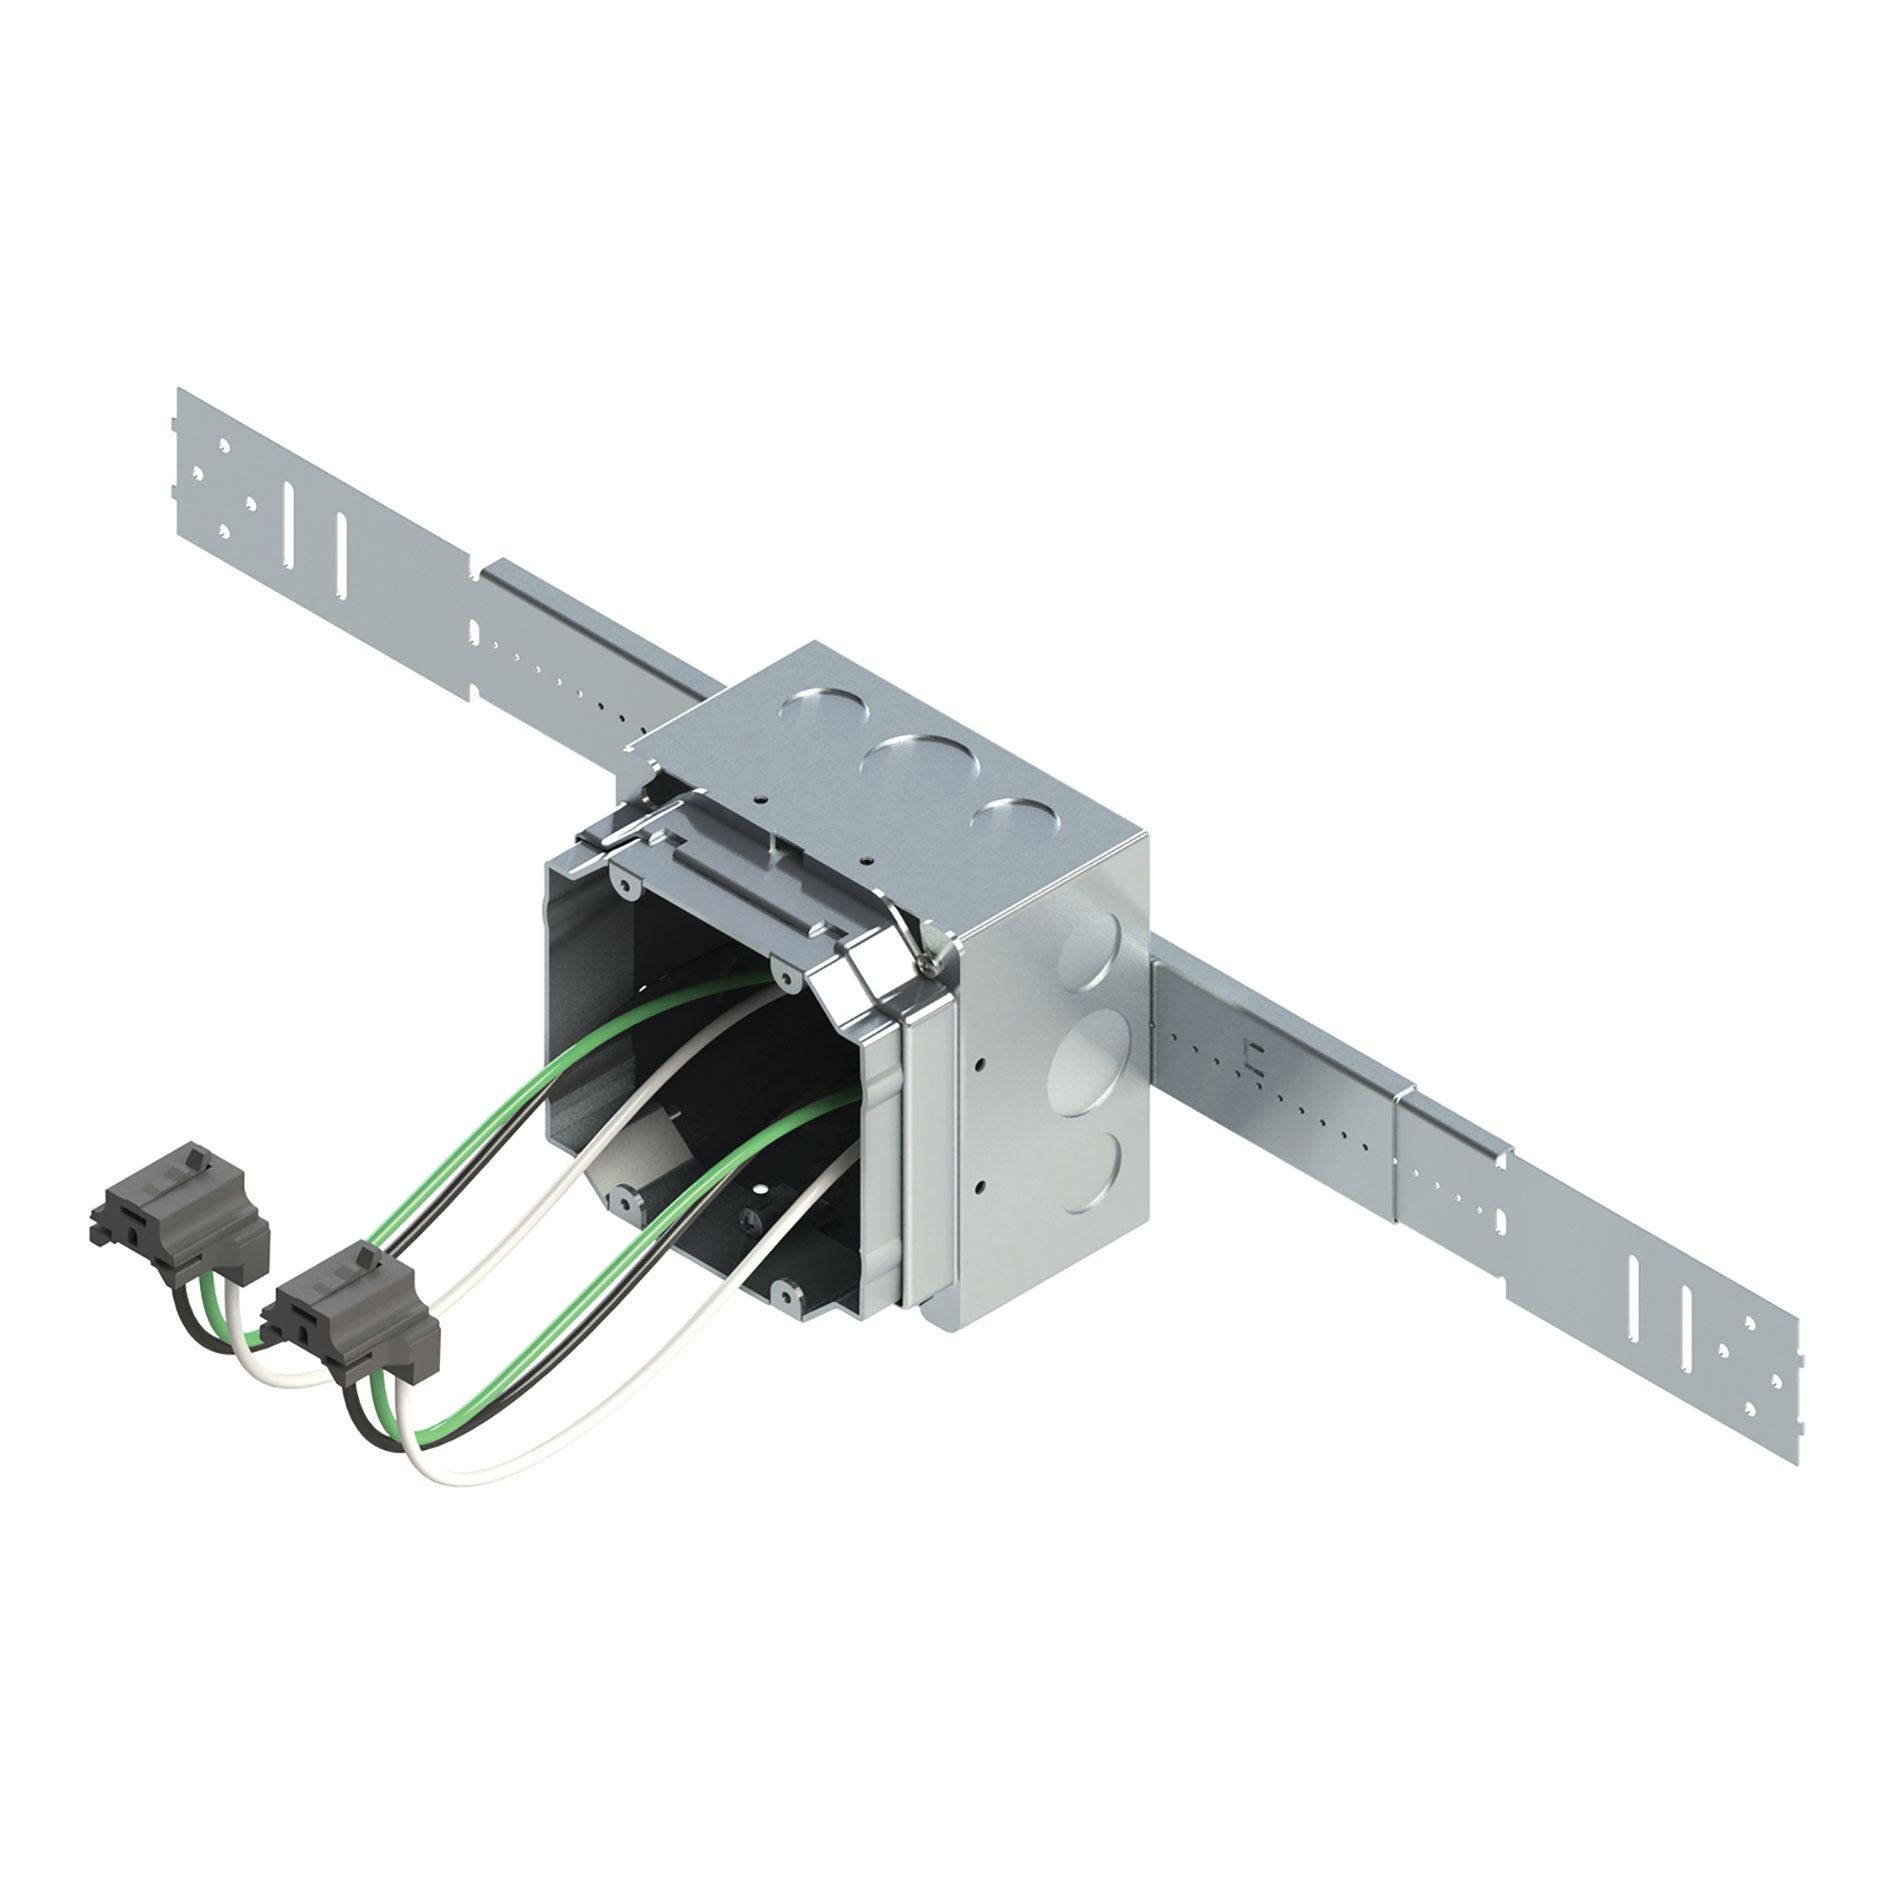 Available in preconfigured combinations that satisfy the majority of commercial rough-ins, Legrand's prefabricated EZE-Fab assemblies ease branch circuit wiring installations.